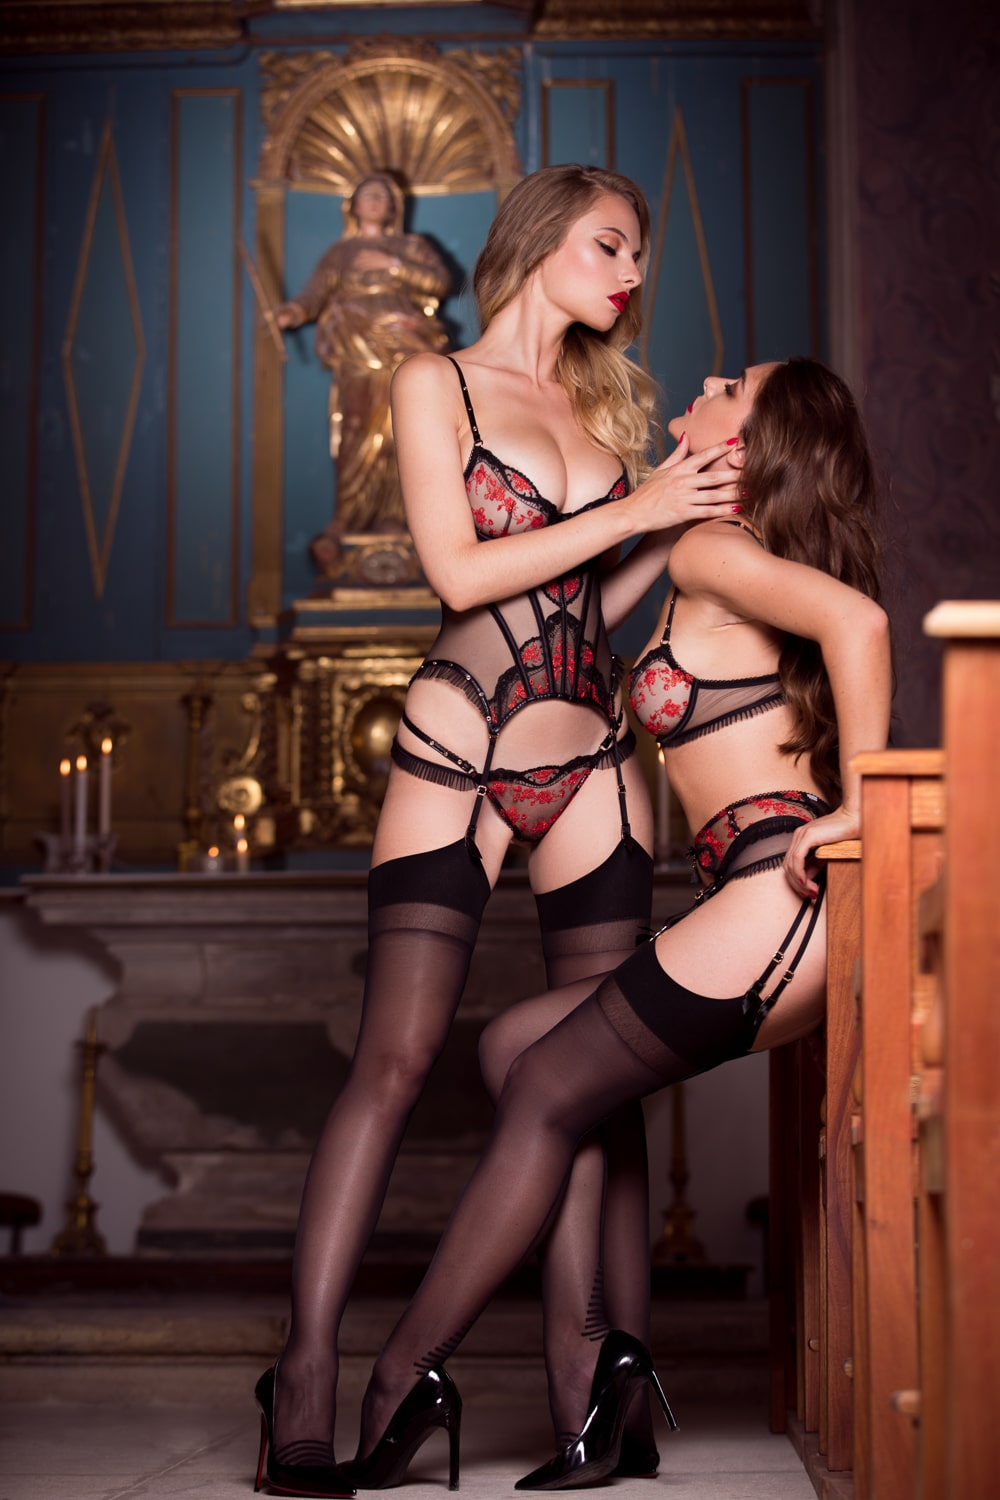 Honey-Birdette-Indecent-Manor-Campaign-11.jpg